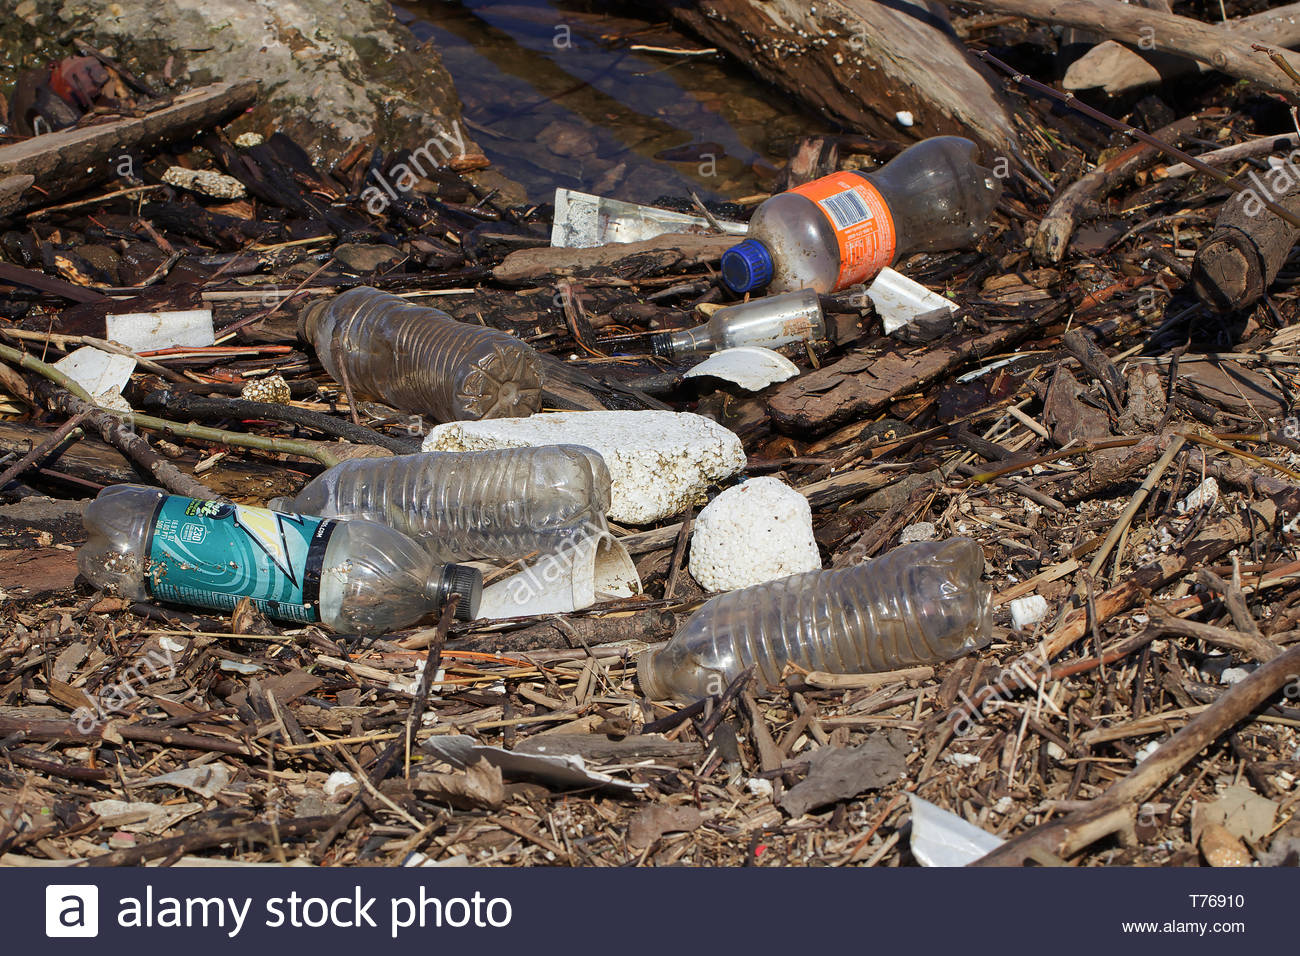 MAY 2019 - MINNEAPOLIS, MN: Plastic bottles, plastic waste, and Styrofoam litter the banks of the Mississippi River. - Stock Image